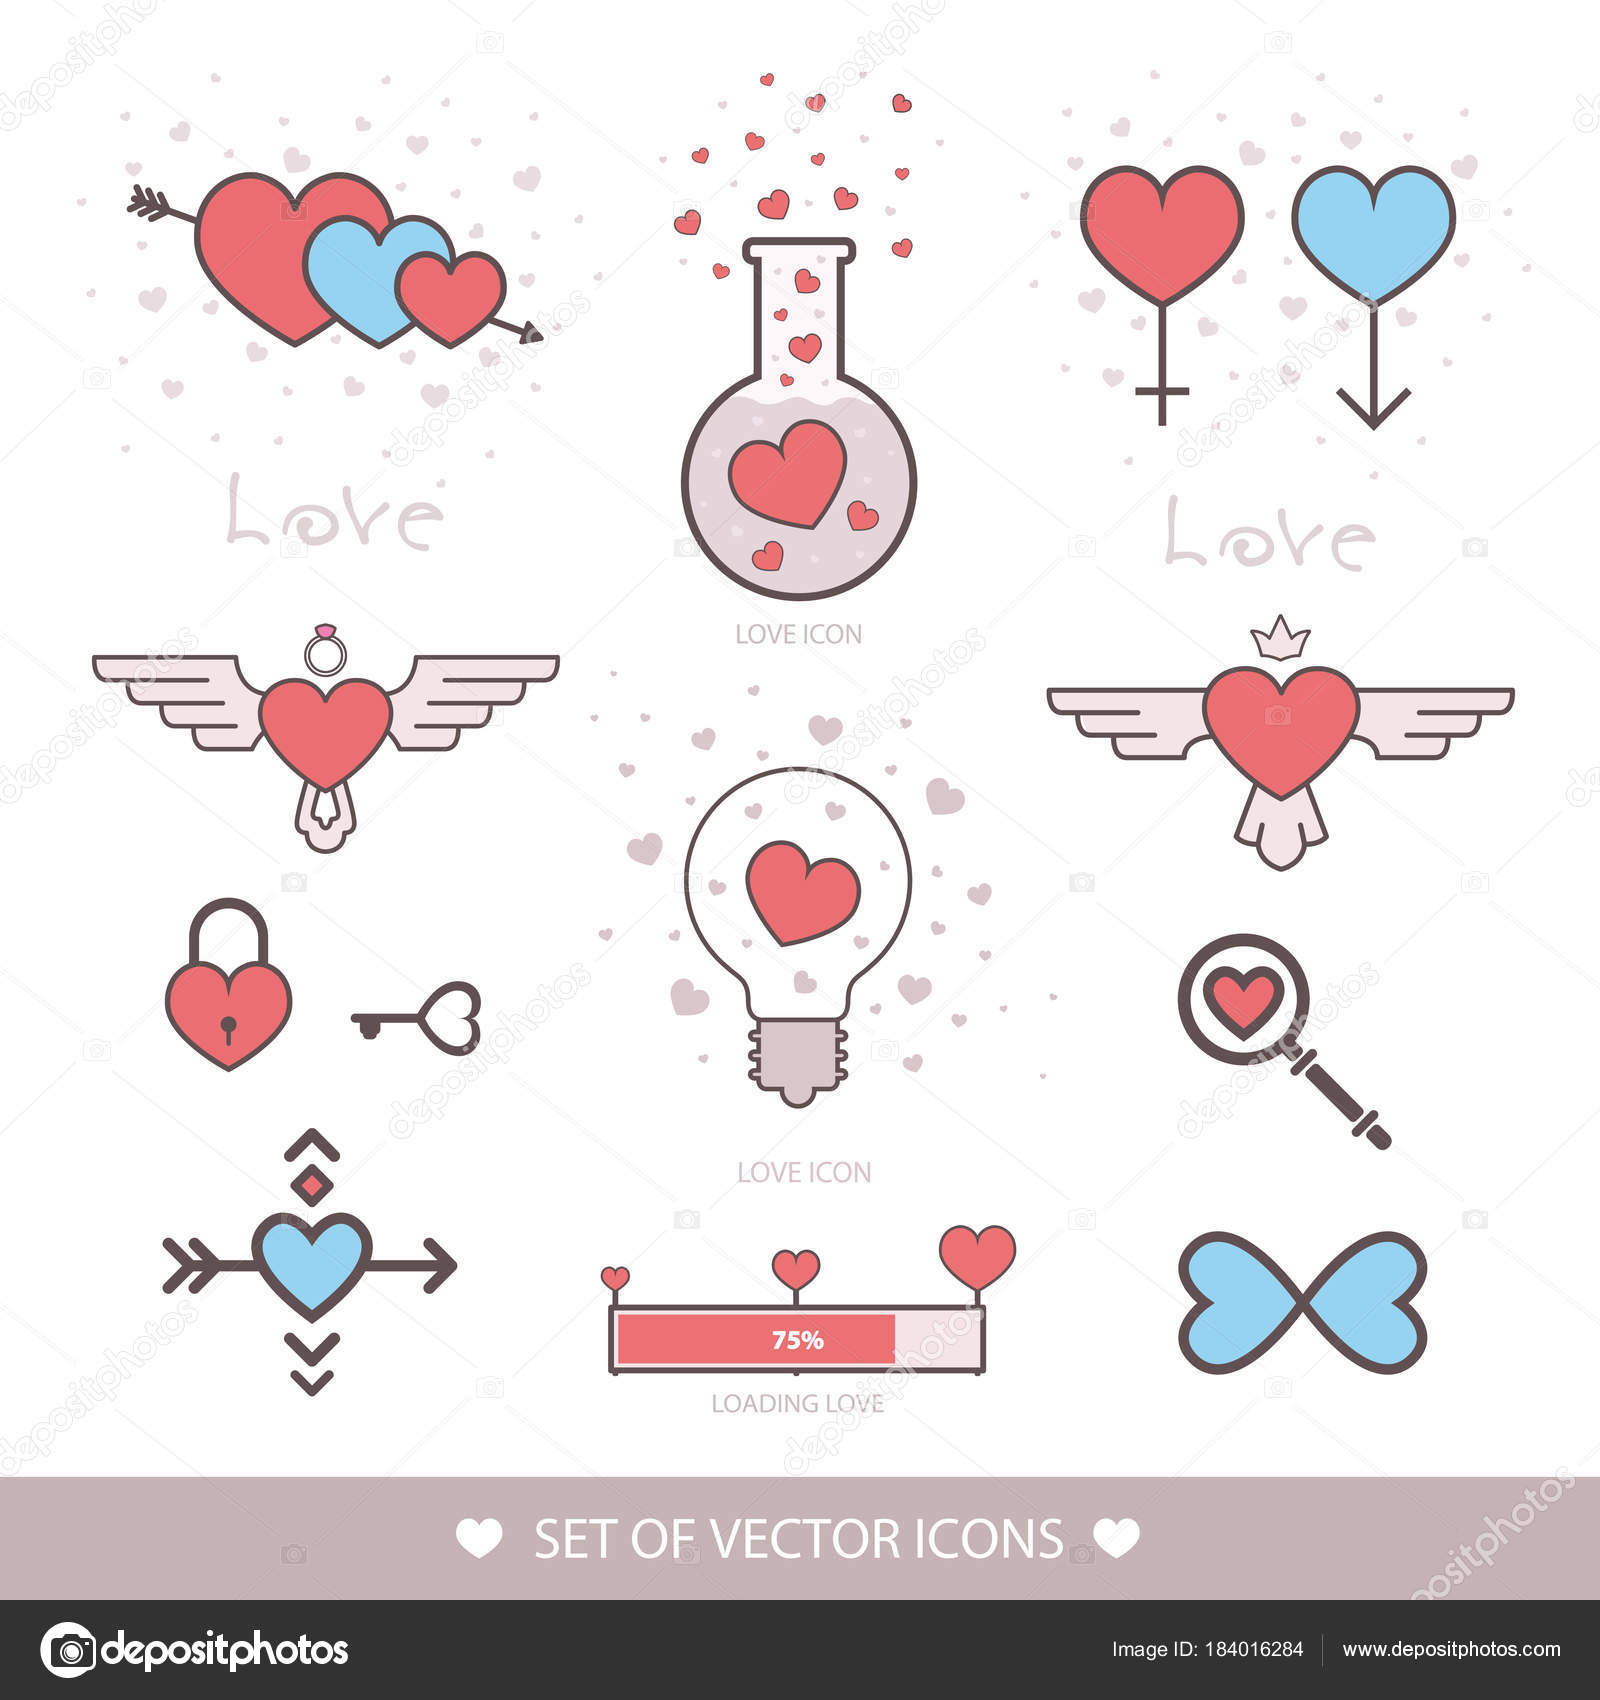 Set Decorative Icon For Valentines Day Chemistry Bulb Castle Bird Heart Diagram Wedding Infinity Arrow Cupid Of Love Laboratory Elixir Template Logo Vector Icons By Subjob